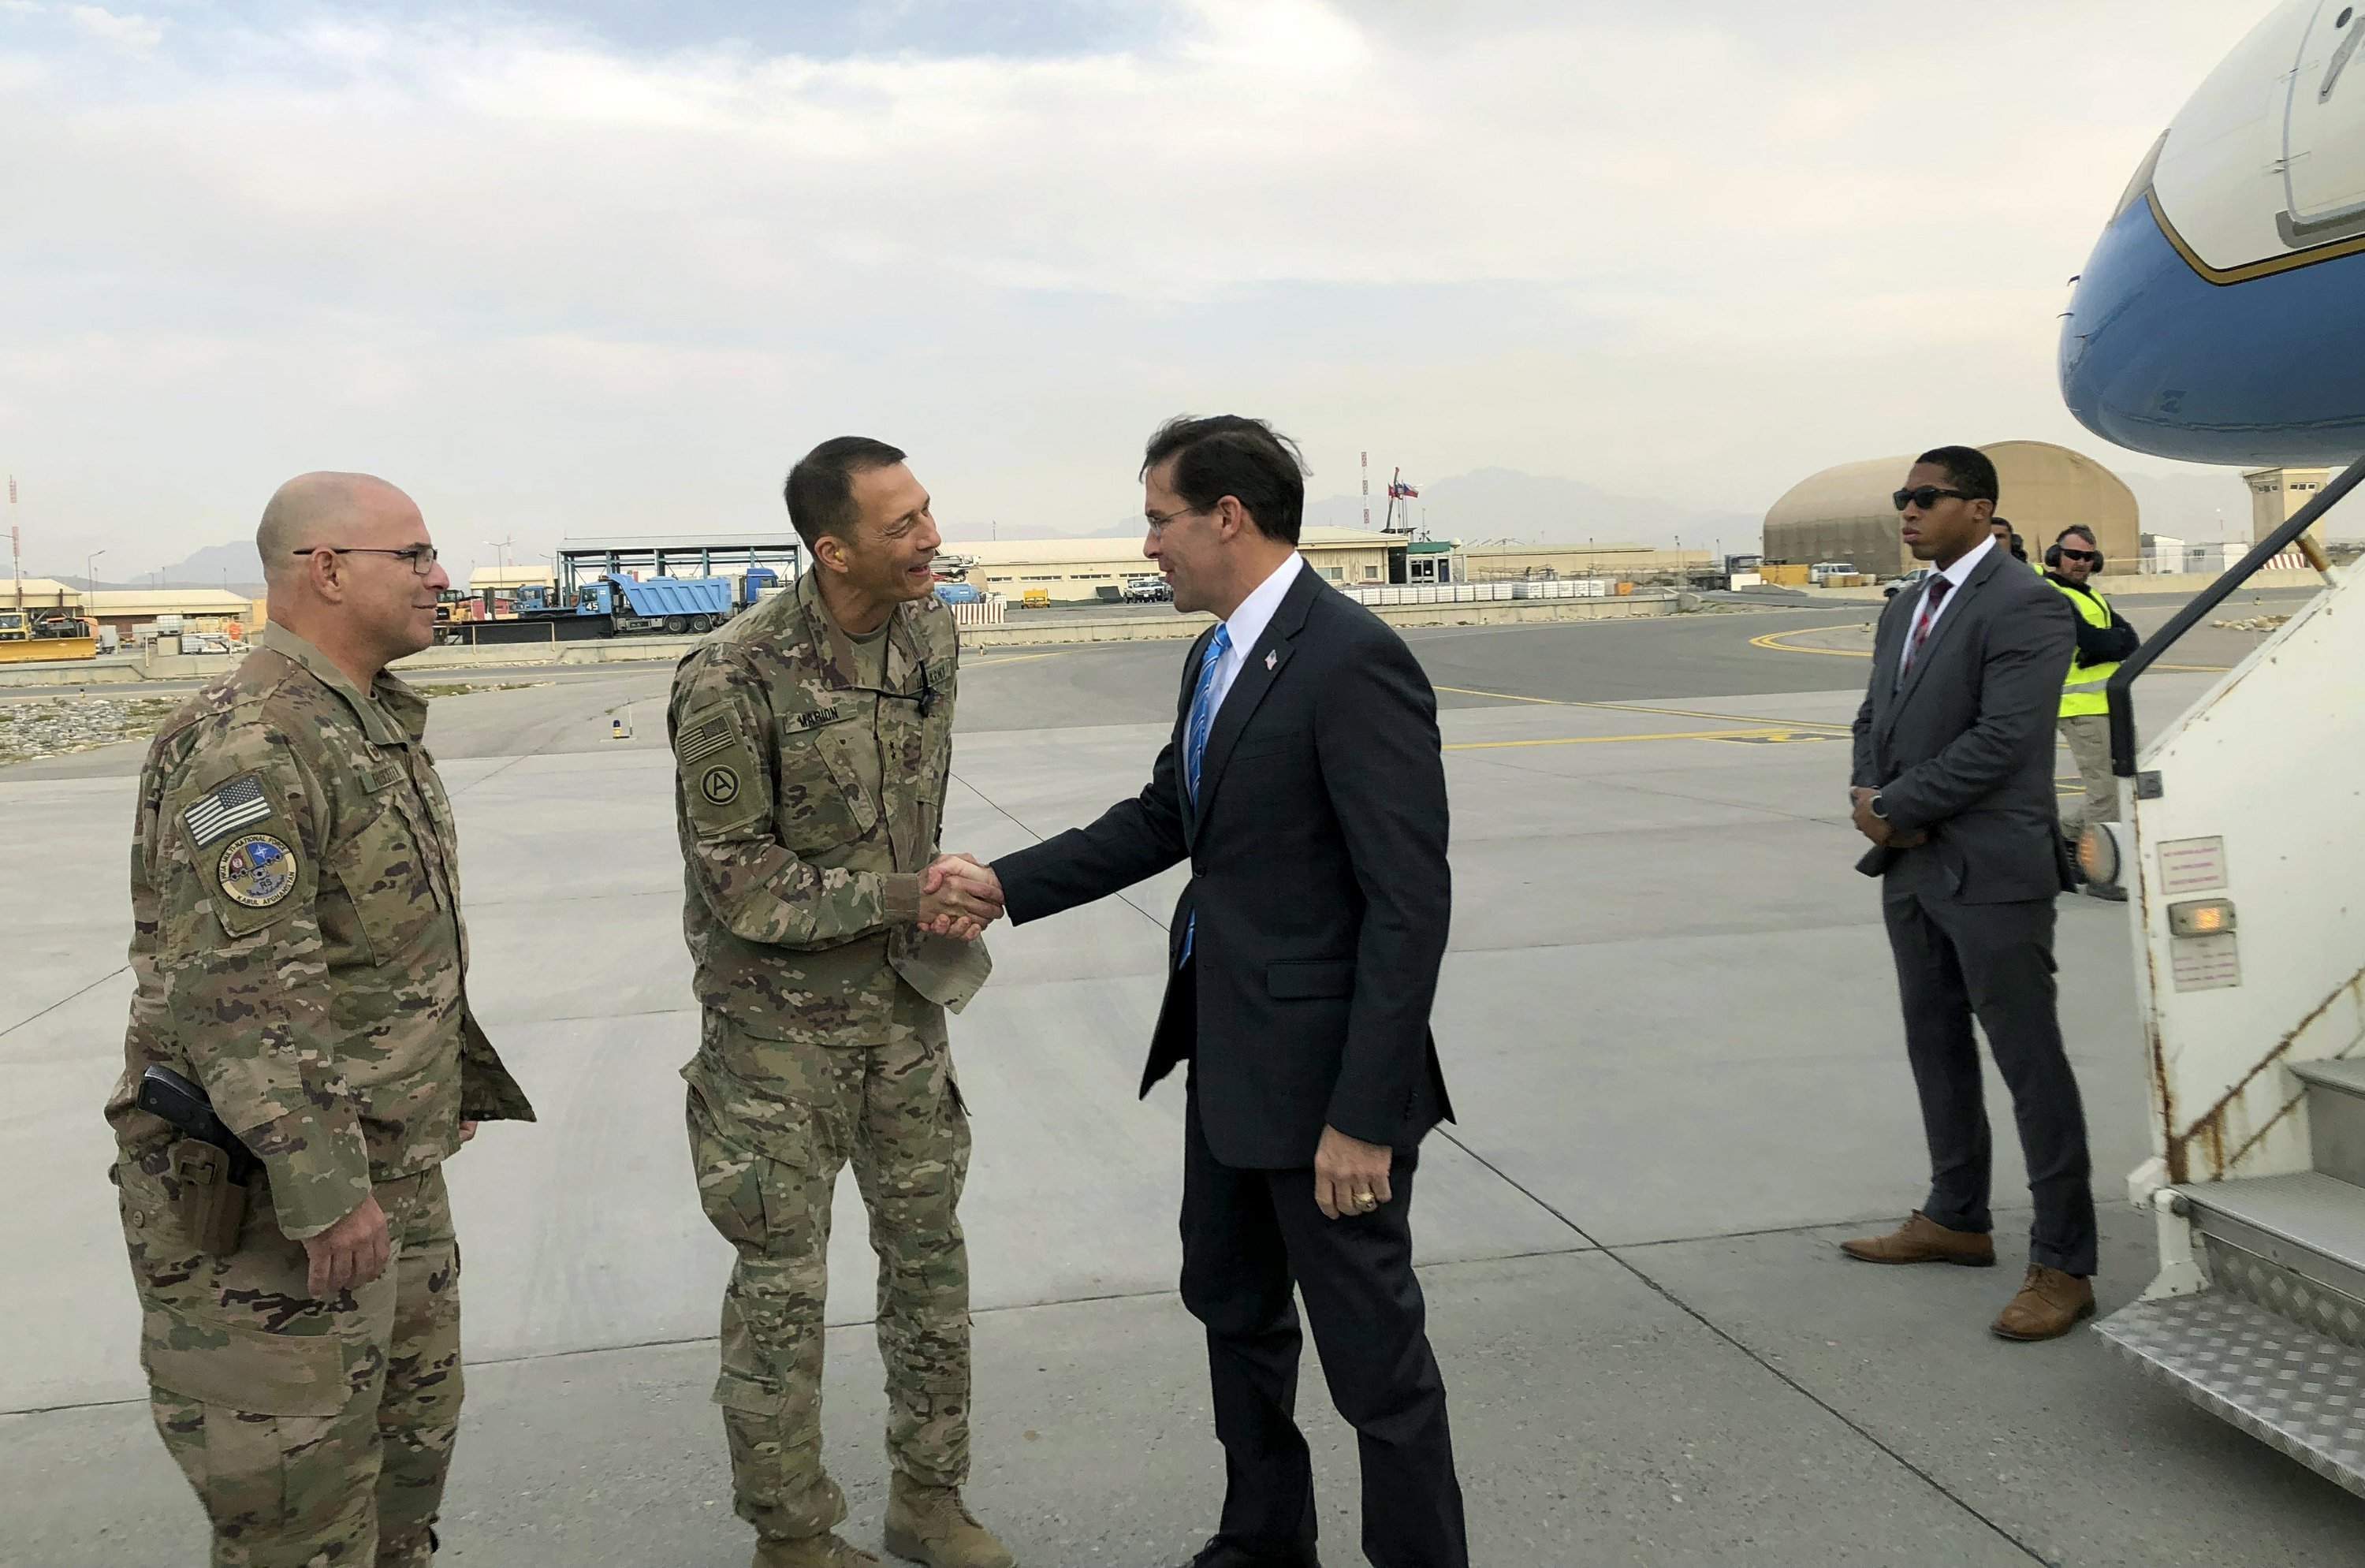 EU calls for Afghan ceasefire as Esper makes surprise visit to Kabul